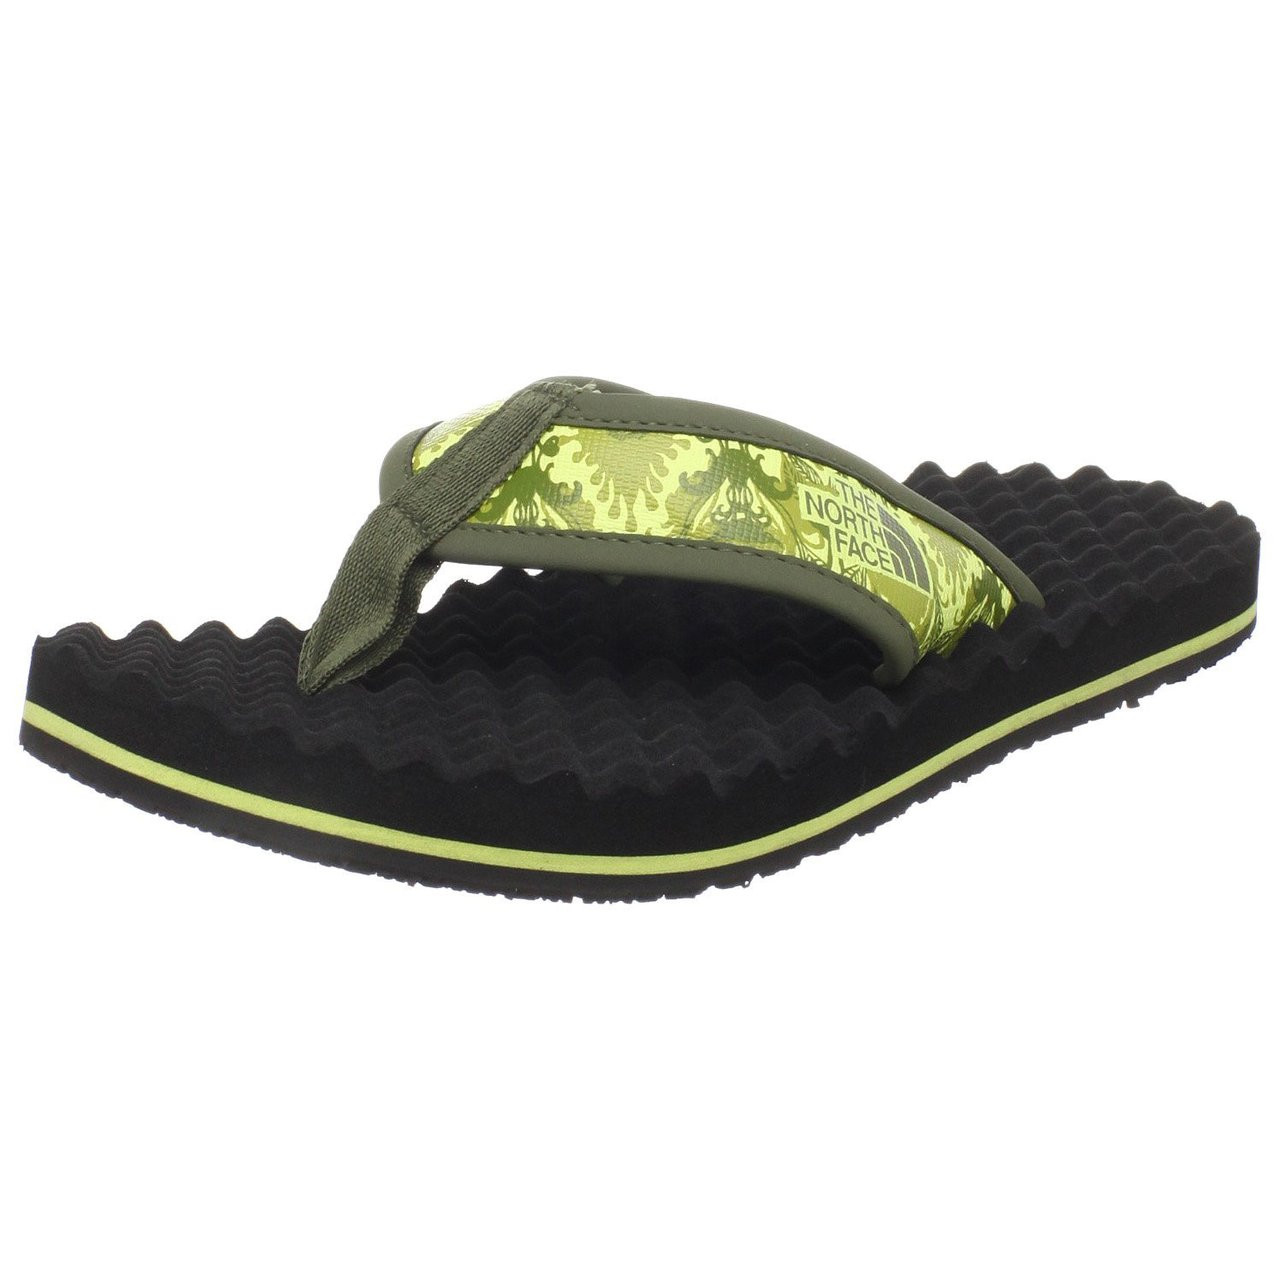 1dcfa24d955167 ... The North Face Womens Base Camp Flip-Flop Burnt Olive Green ·  http   d3d71ba2asa5oz.cloudfront.net 32001347 images abpfjm7.